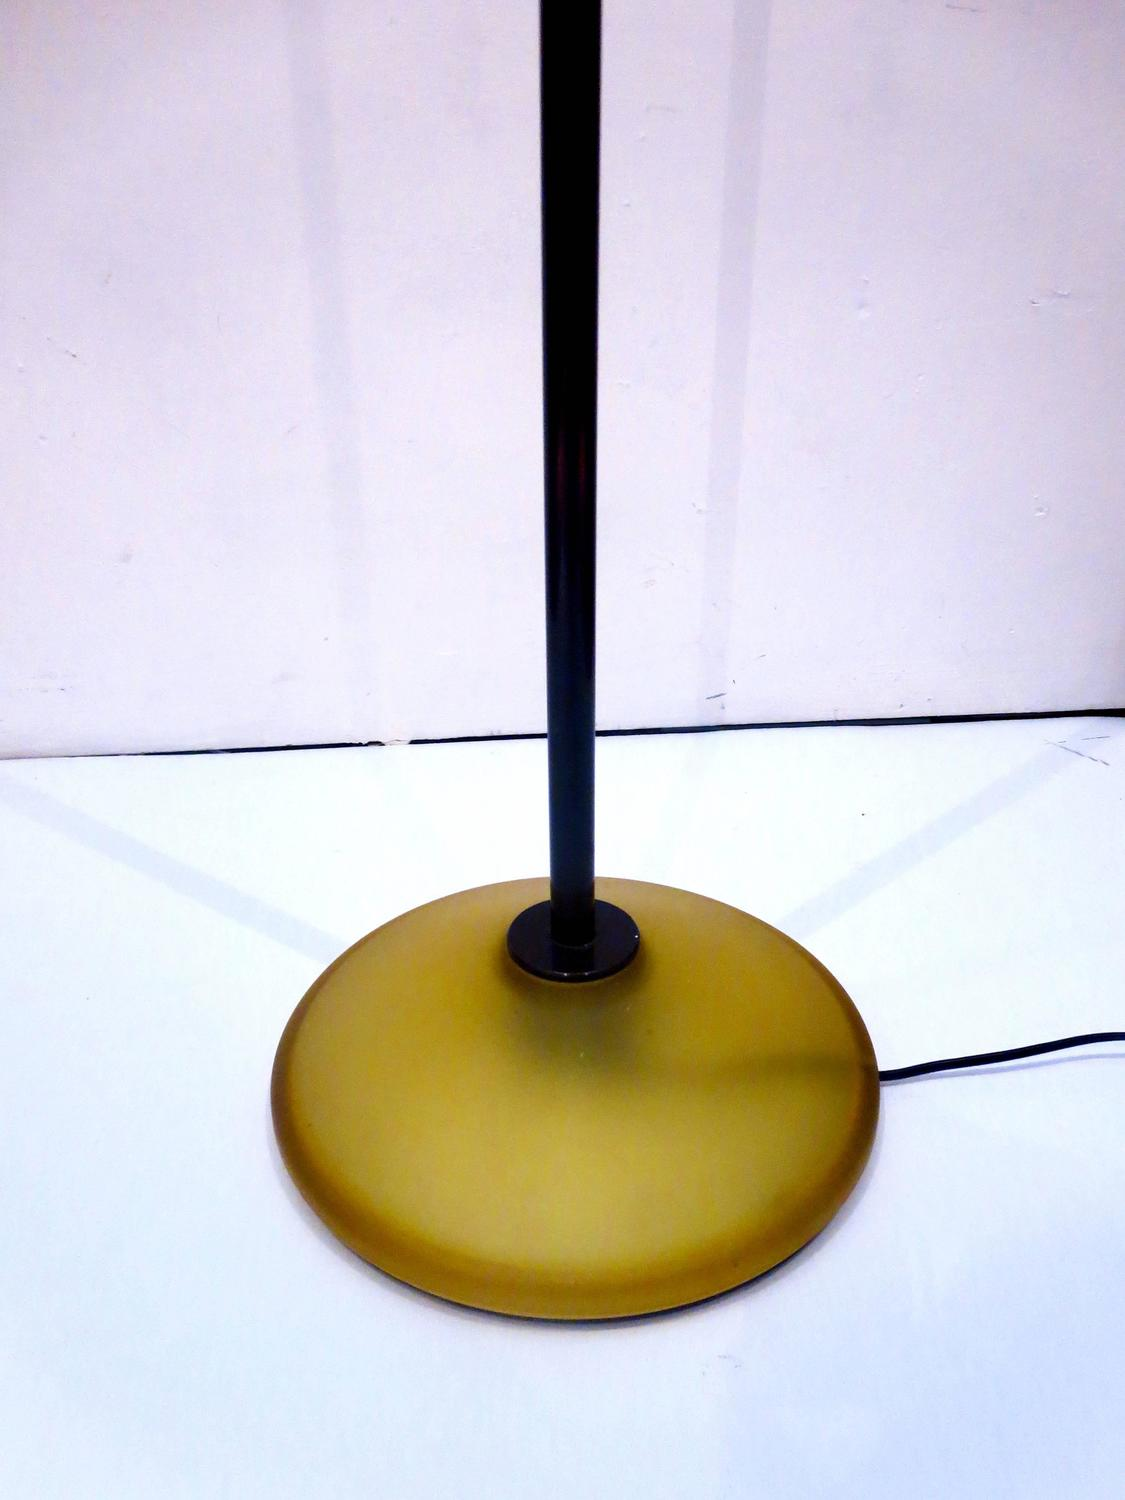 1978 arteluce donald floor torchiere lamp designed by king and miranda. Black Bedroom Furniture Sets. Home Design Ideas